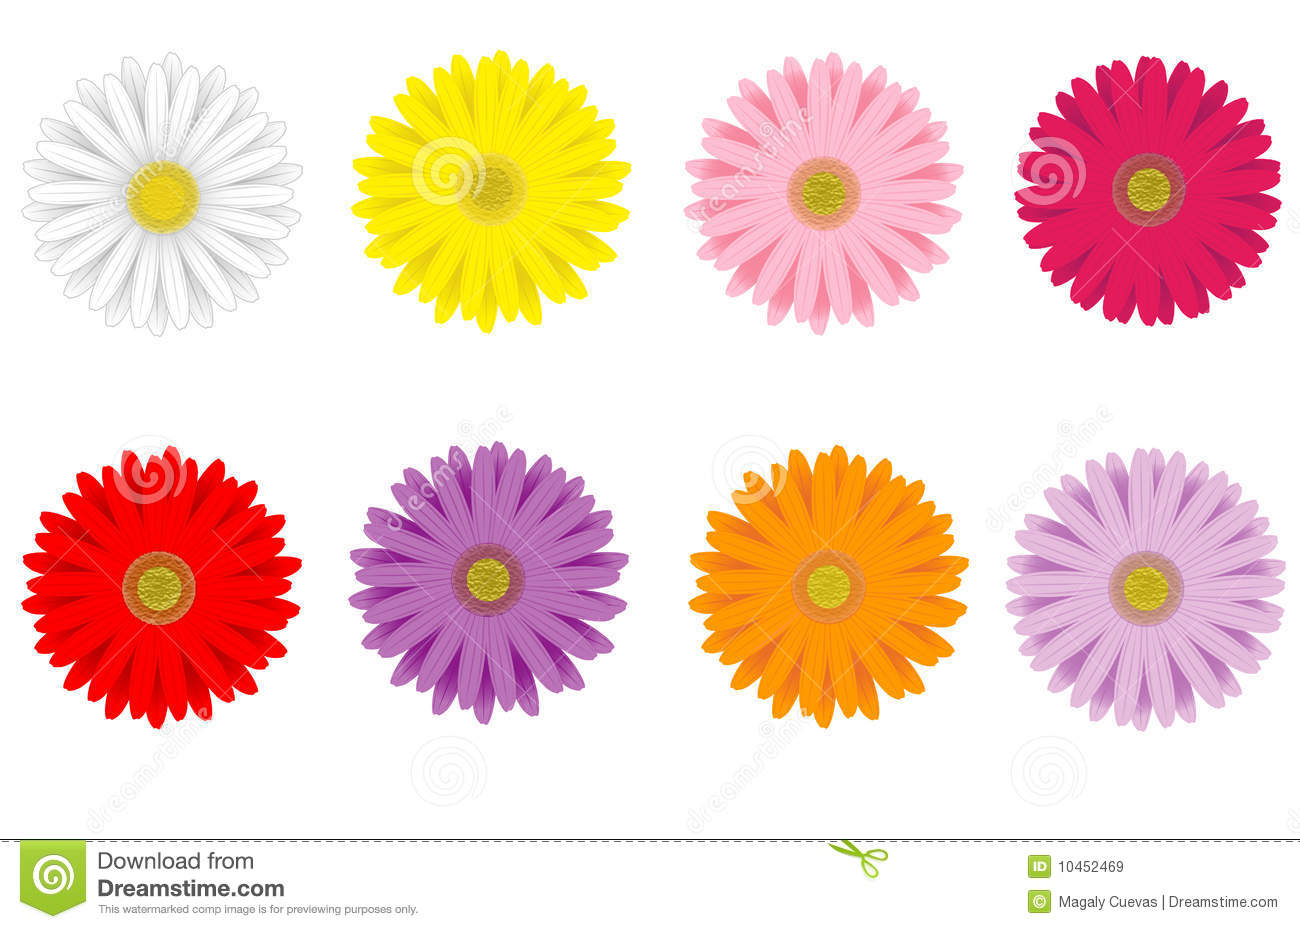 Daisies Stock Illustrations.